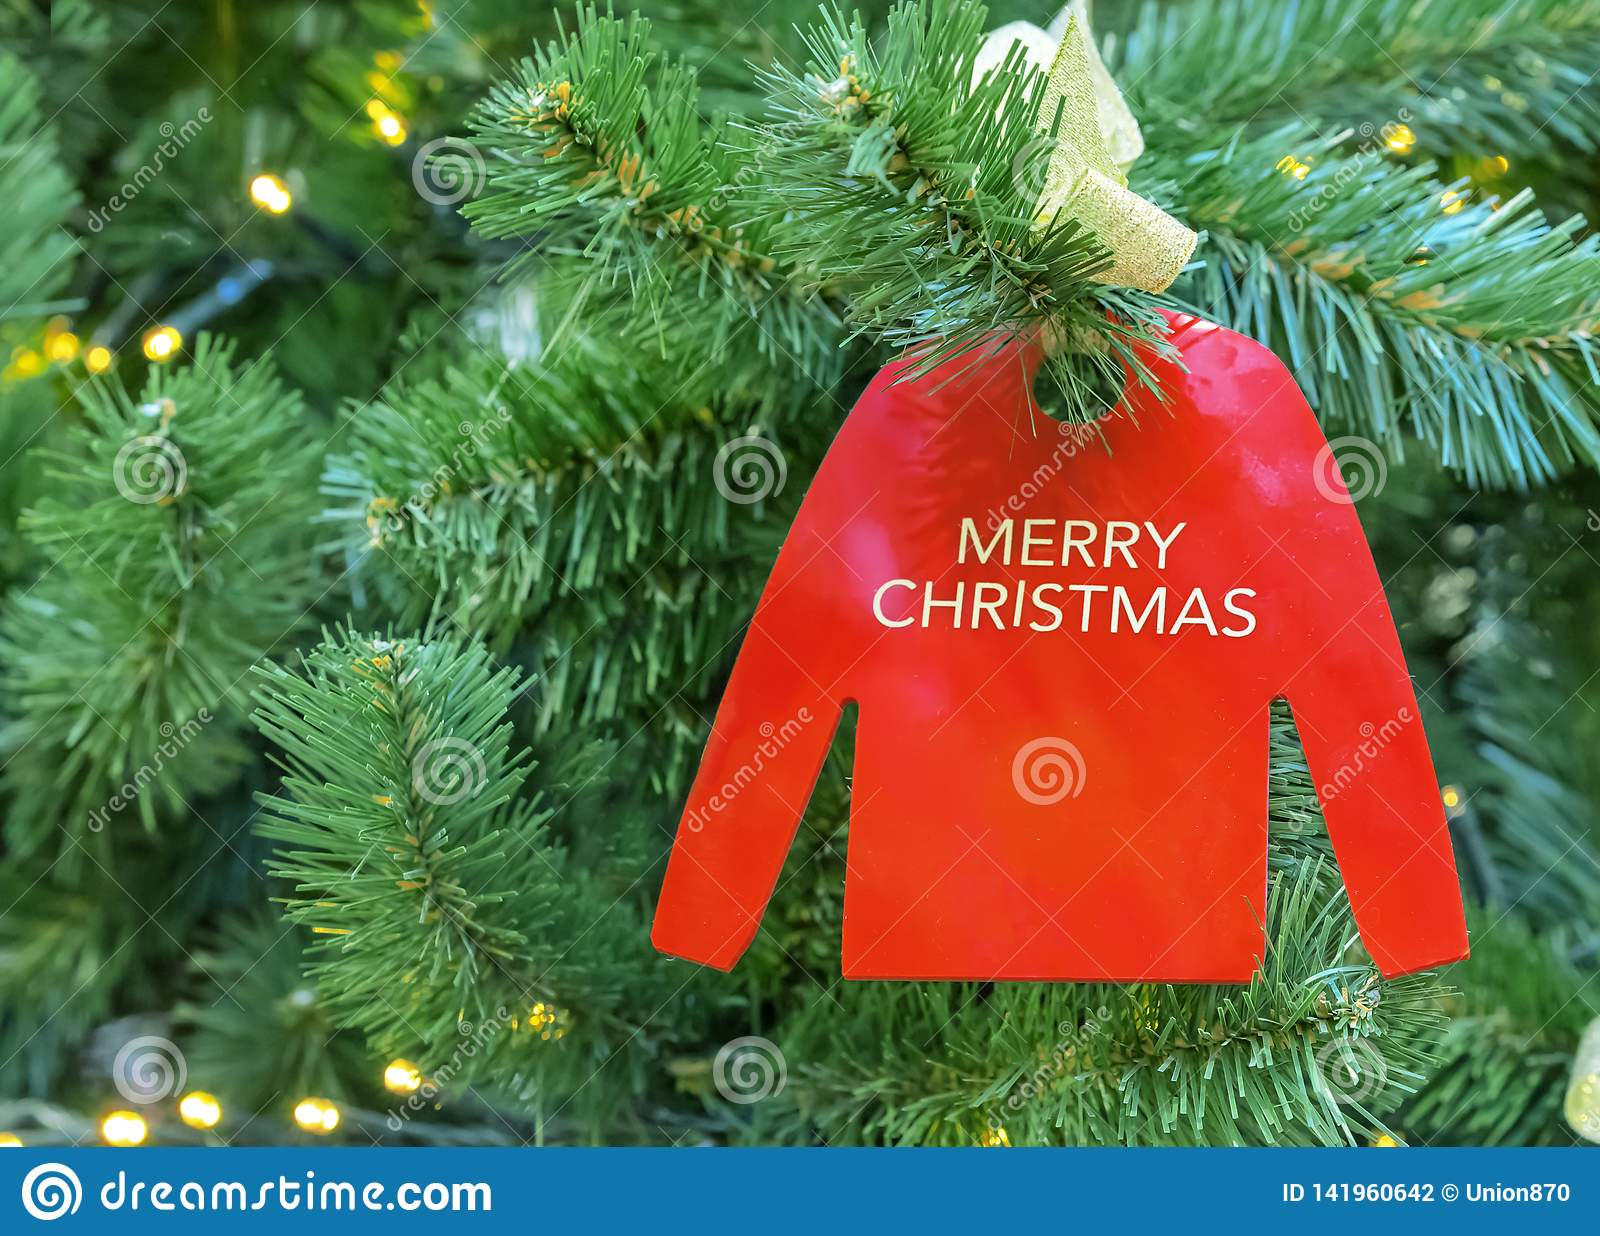 Ornament on a Christmas tree in the form of a red jumper with an inscription Merry Christmas